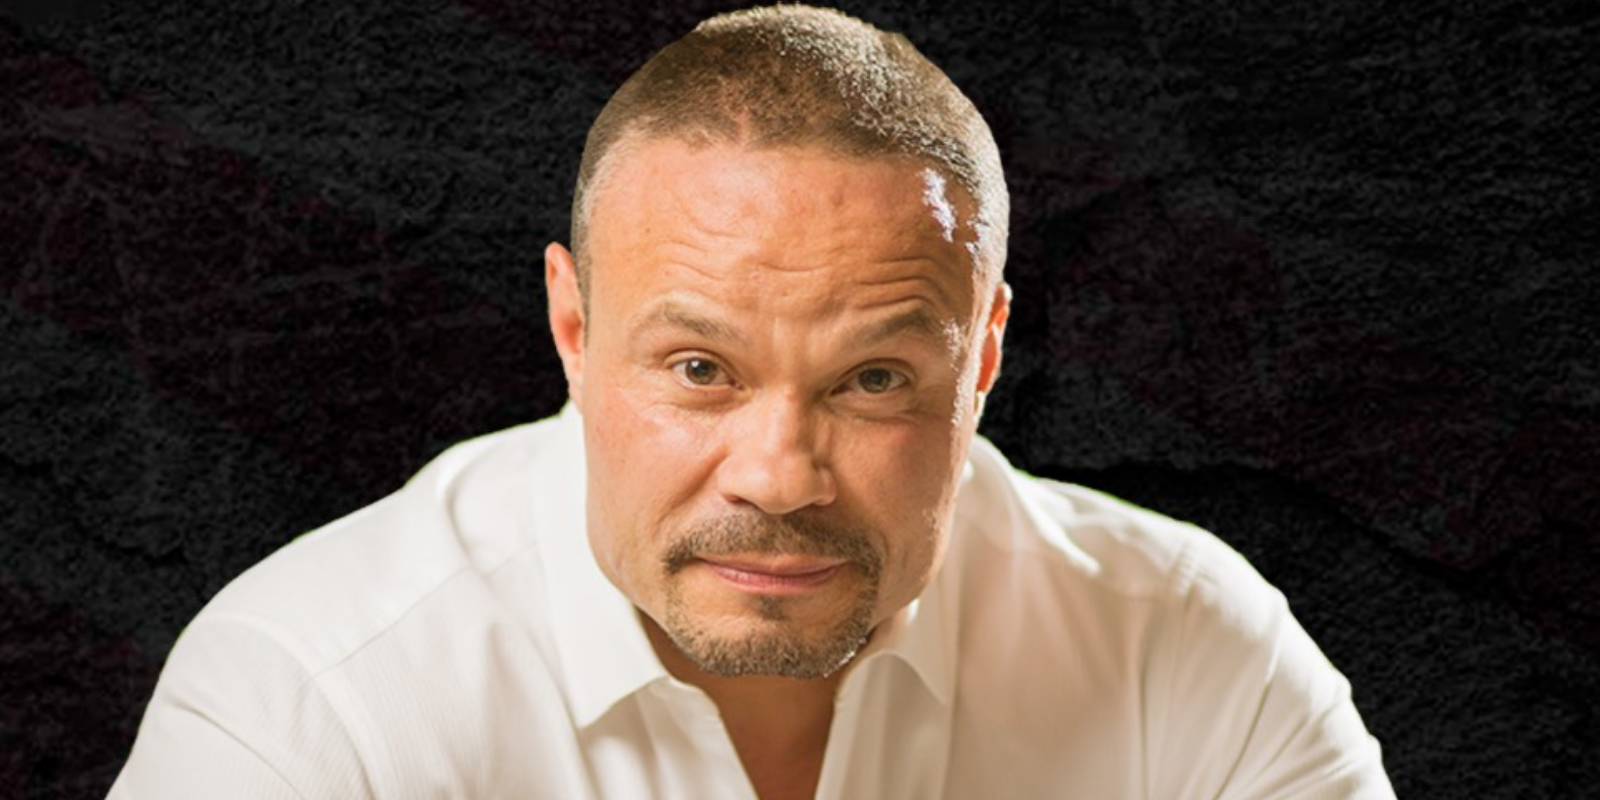 WATCH: Dan Bongino slams Big Tech's censorship rampage: 'Are we going to talk by carrier pigeon?'